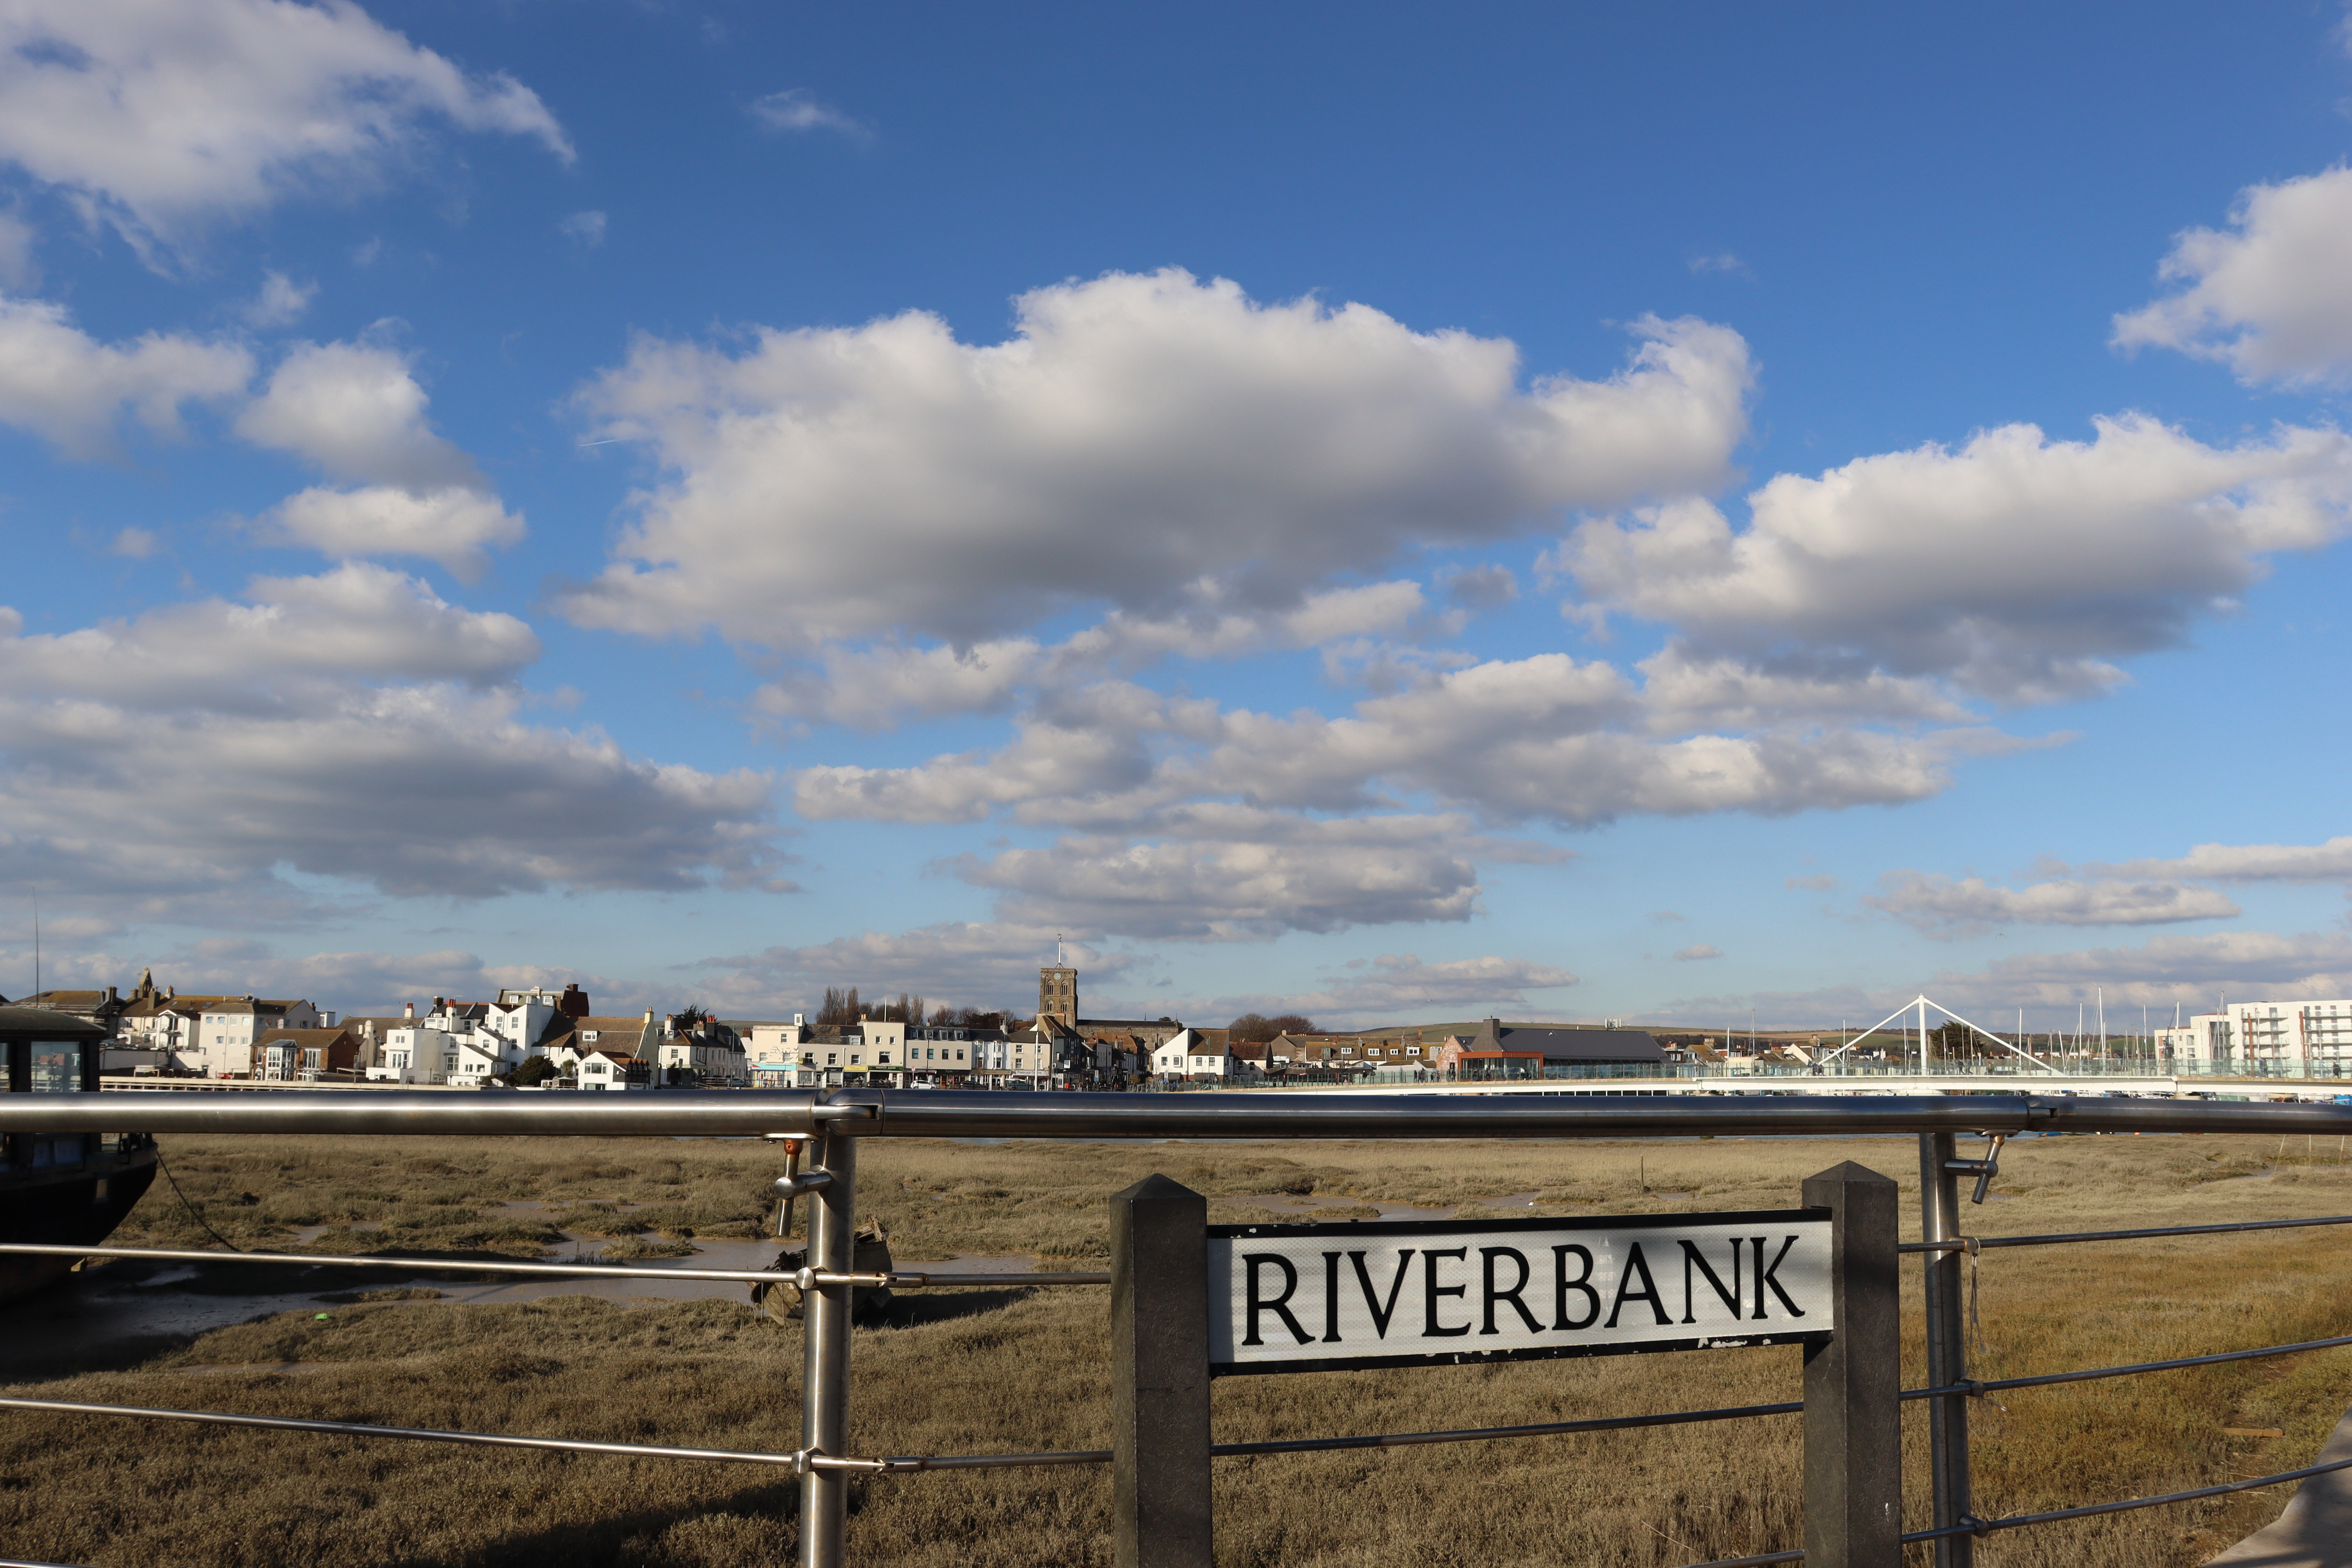 """A street sign saying """"Riverbank"""" in front of some silver railings overlooking the river and the town of Shoreham-by-Sea on the other side of the river."""